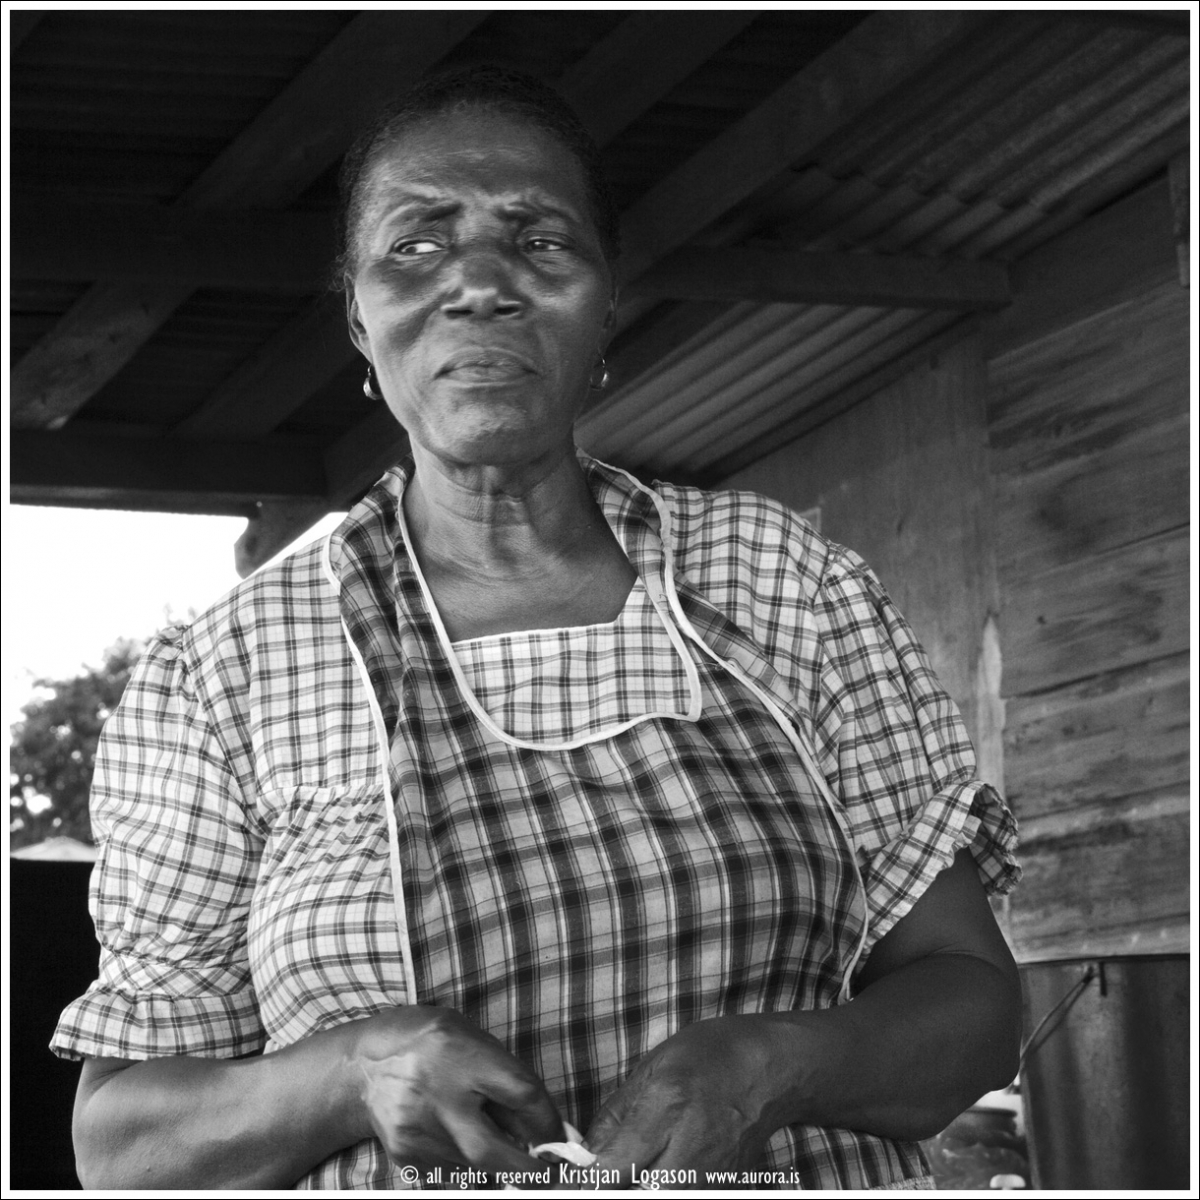 Miss Julie former teacher for 22 years now runs a small restaurant on the mainstreet of Dangriga